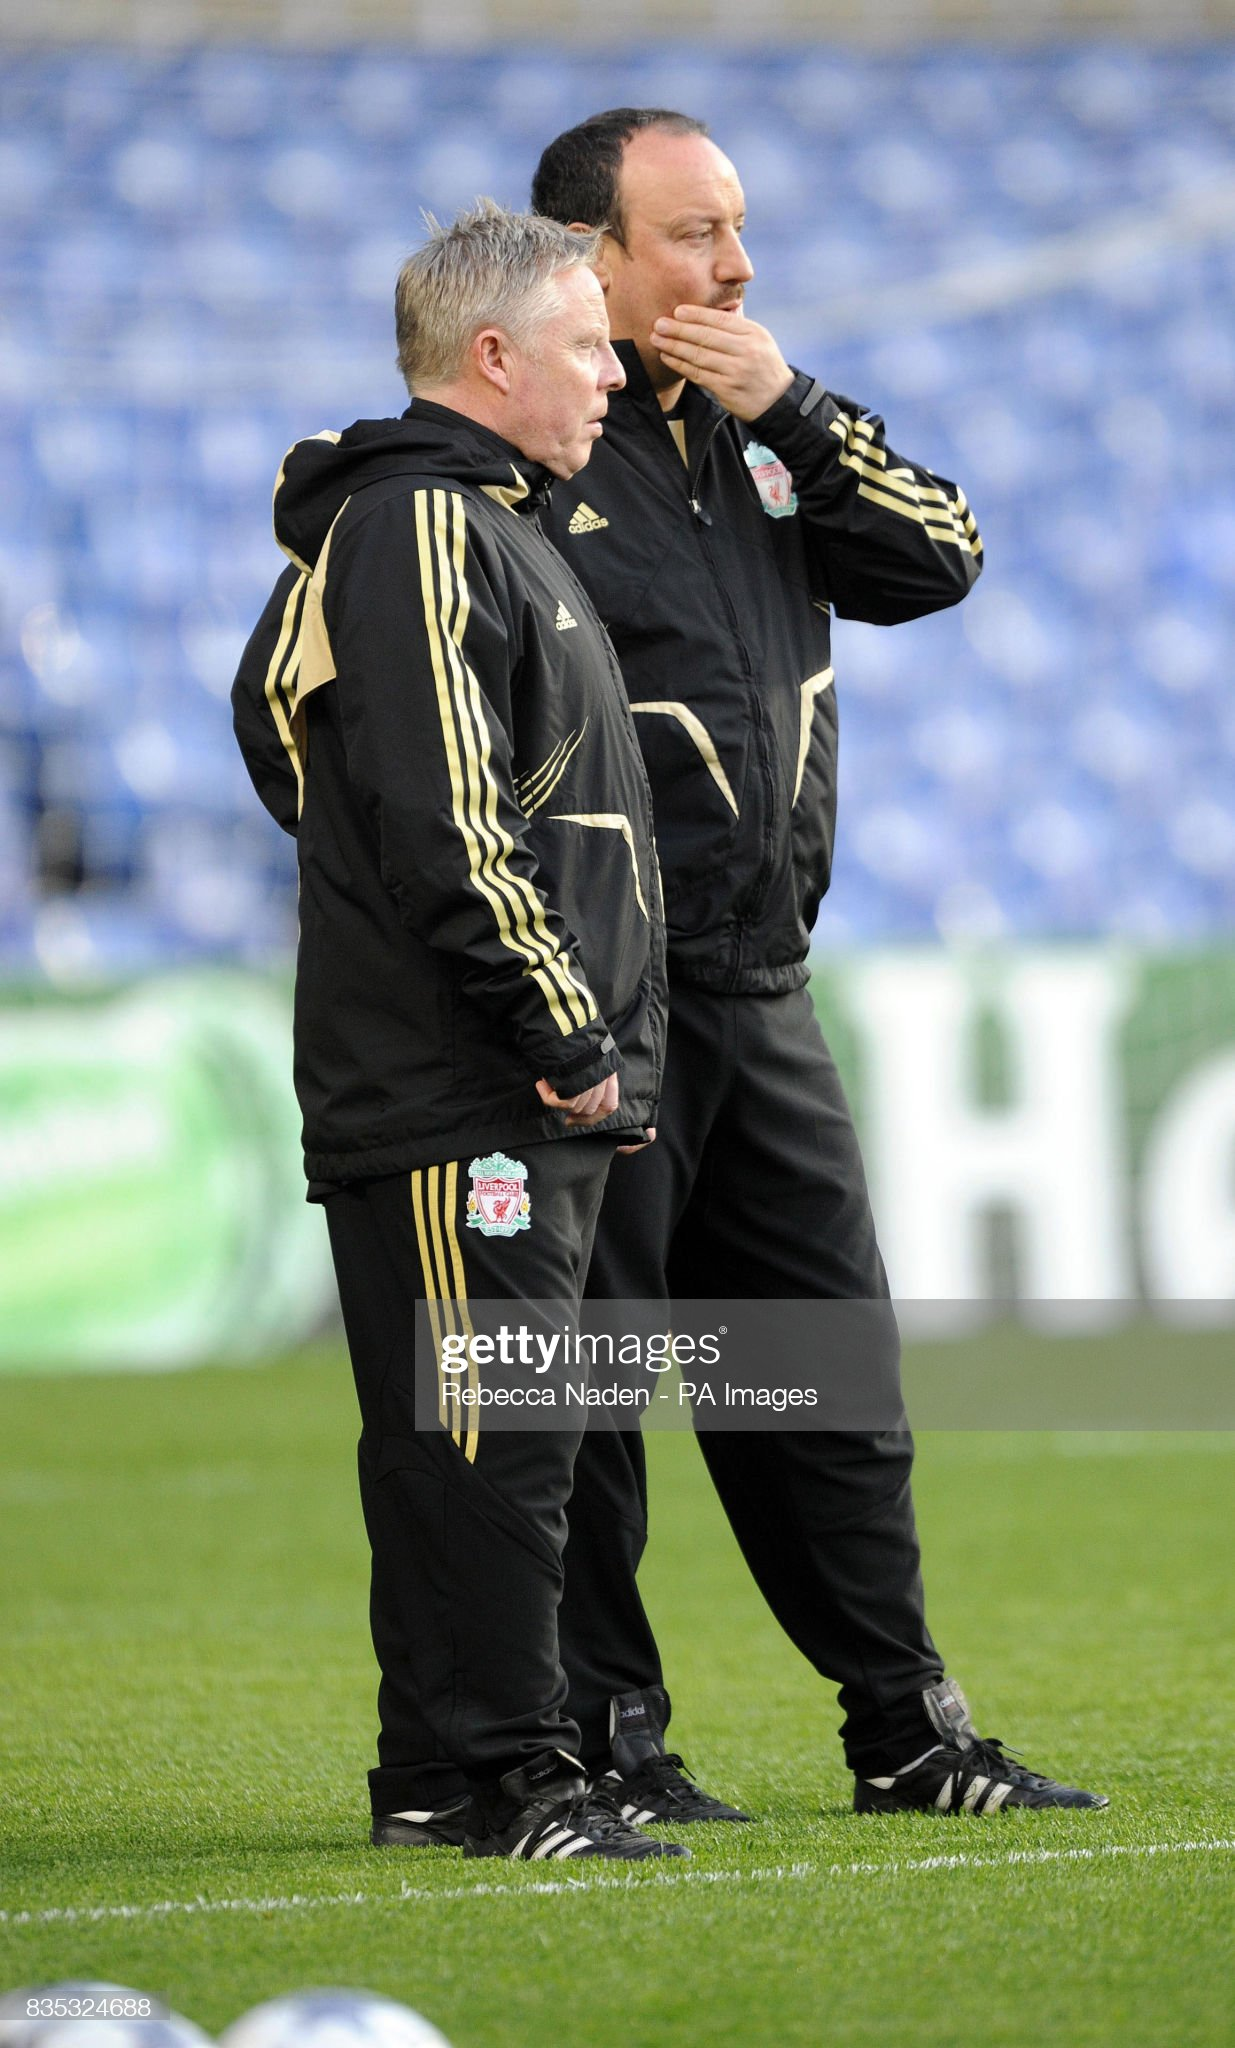 ¿Cuánto mide Sammy Lee? - Real height Liverpool-manager-rafael-benitez-in-conversation-with-coach-sammy-lee-picture-id835324688?s=2048x2048